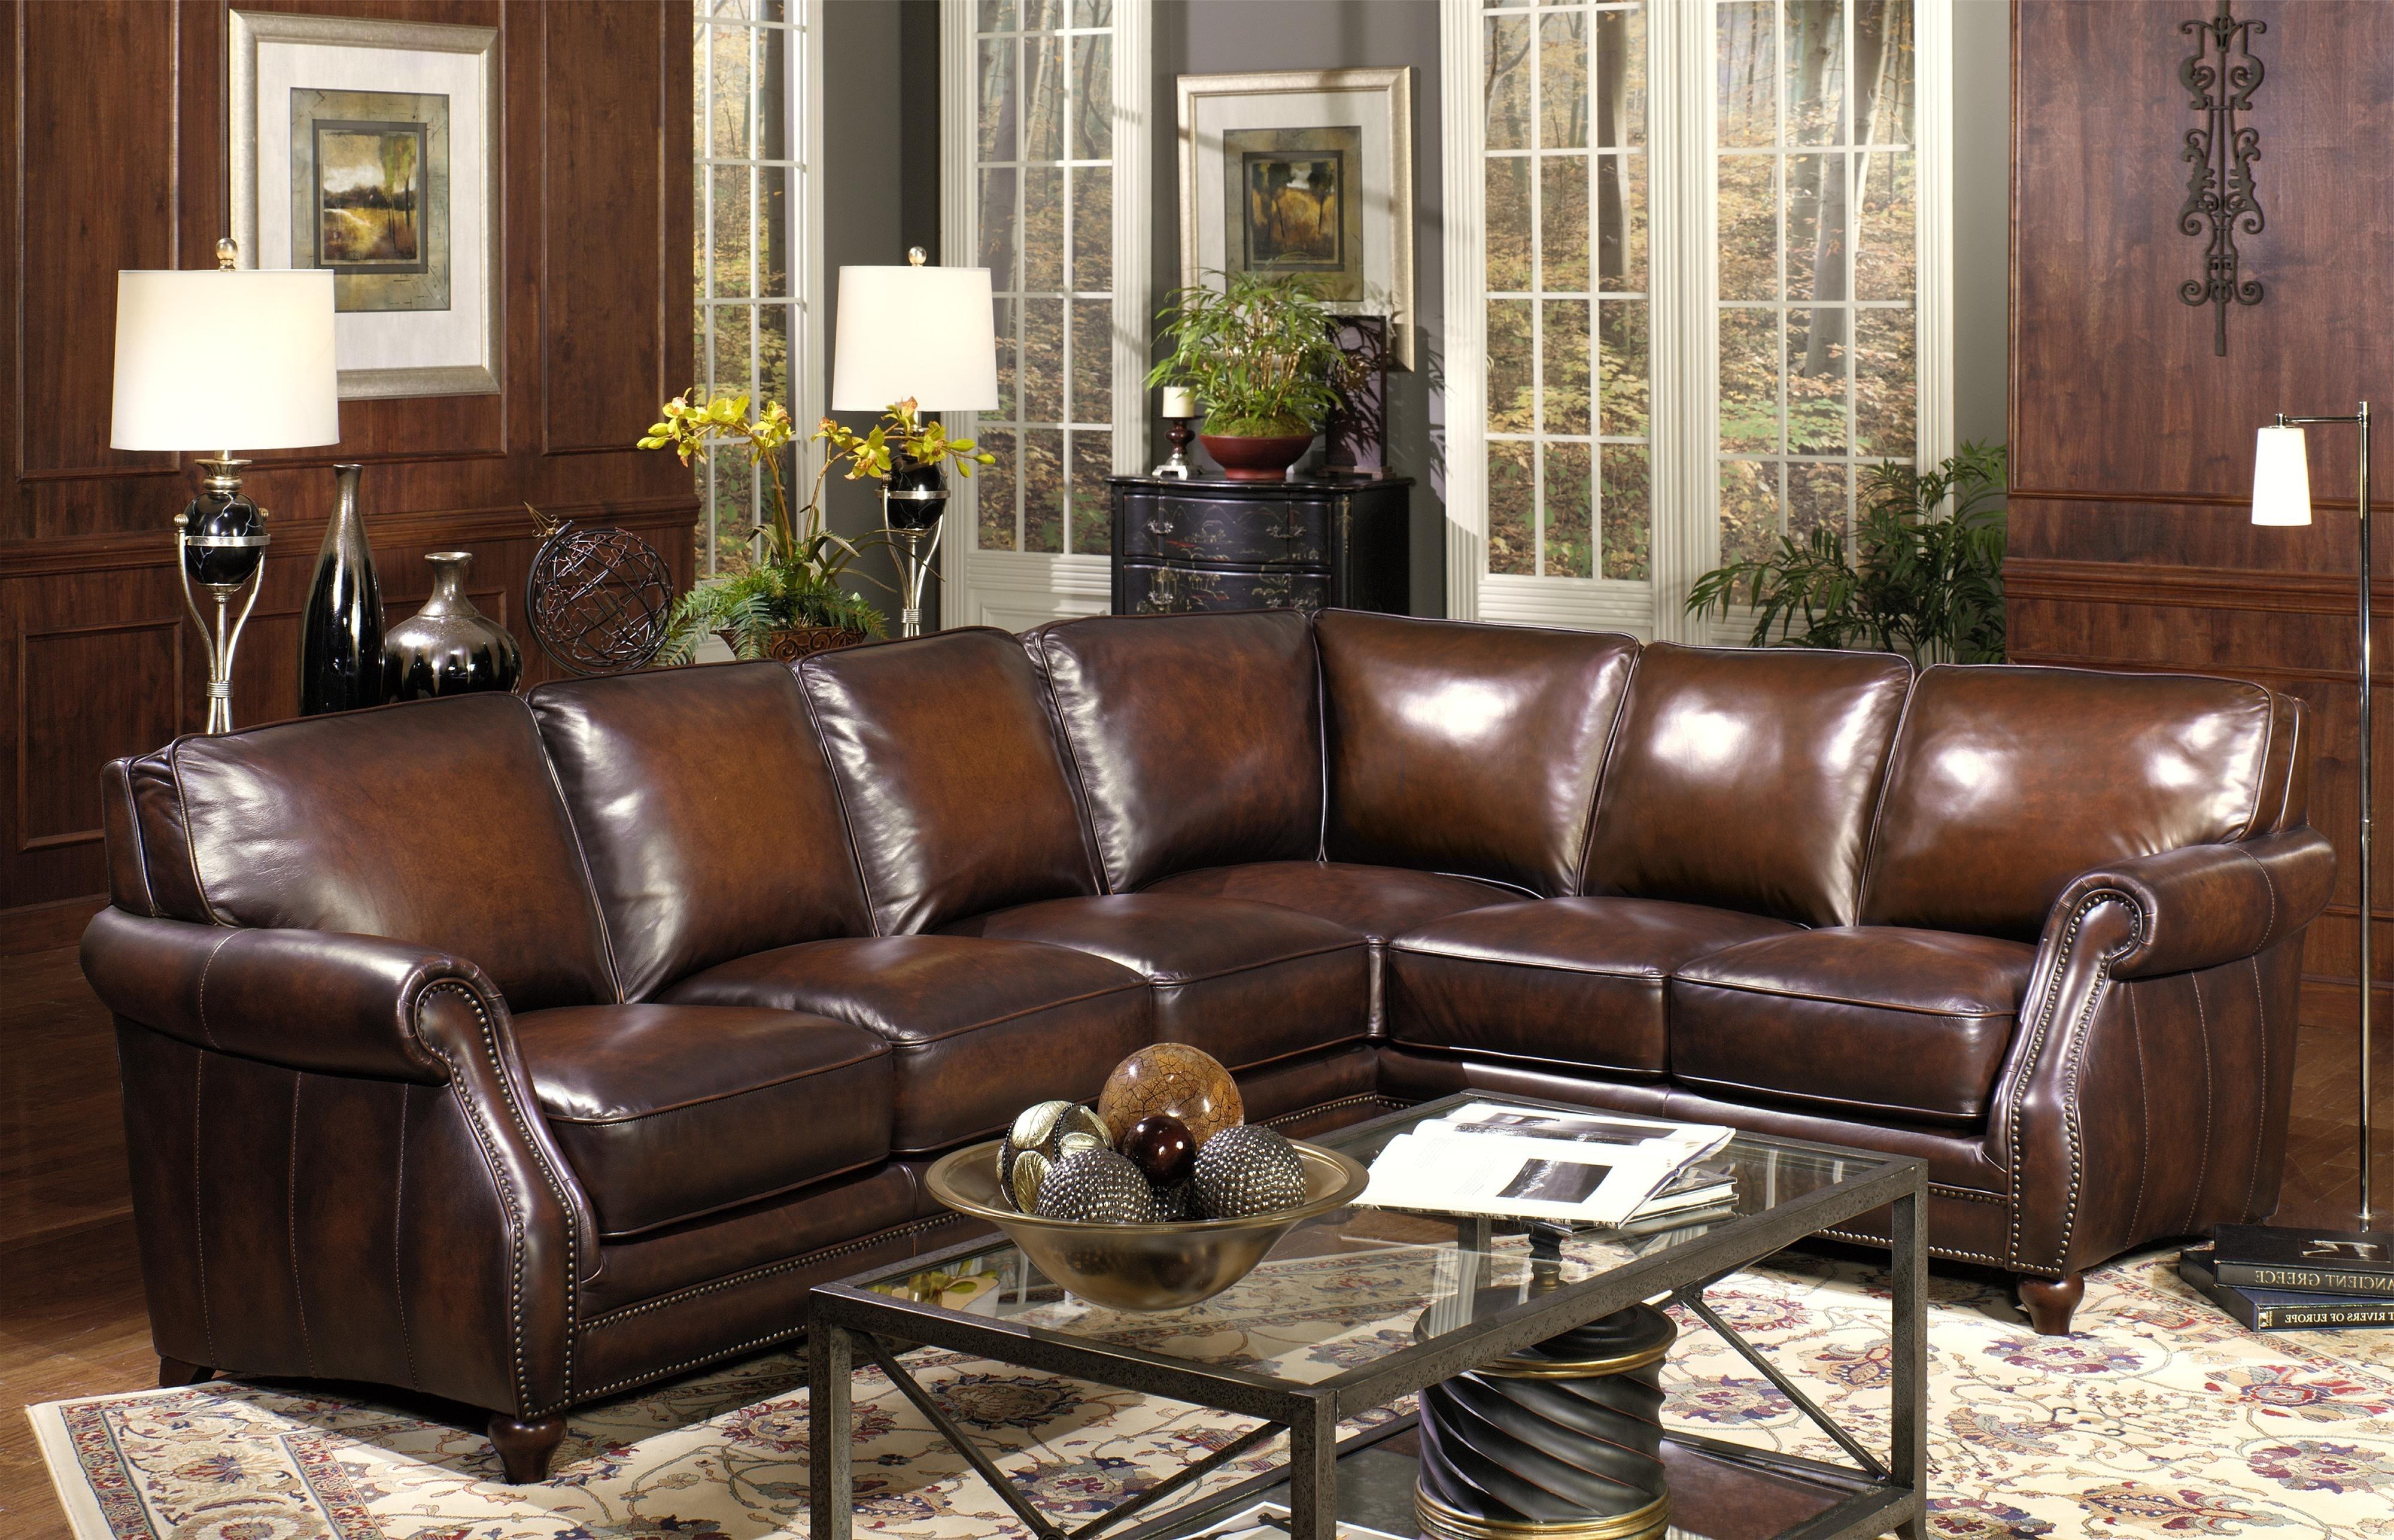 Sofa : Small Sectional Sofa Contemporary Sectional Sofas Best Within Preferred Quality Sectional Sofas (View 7 of 15)